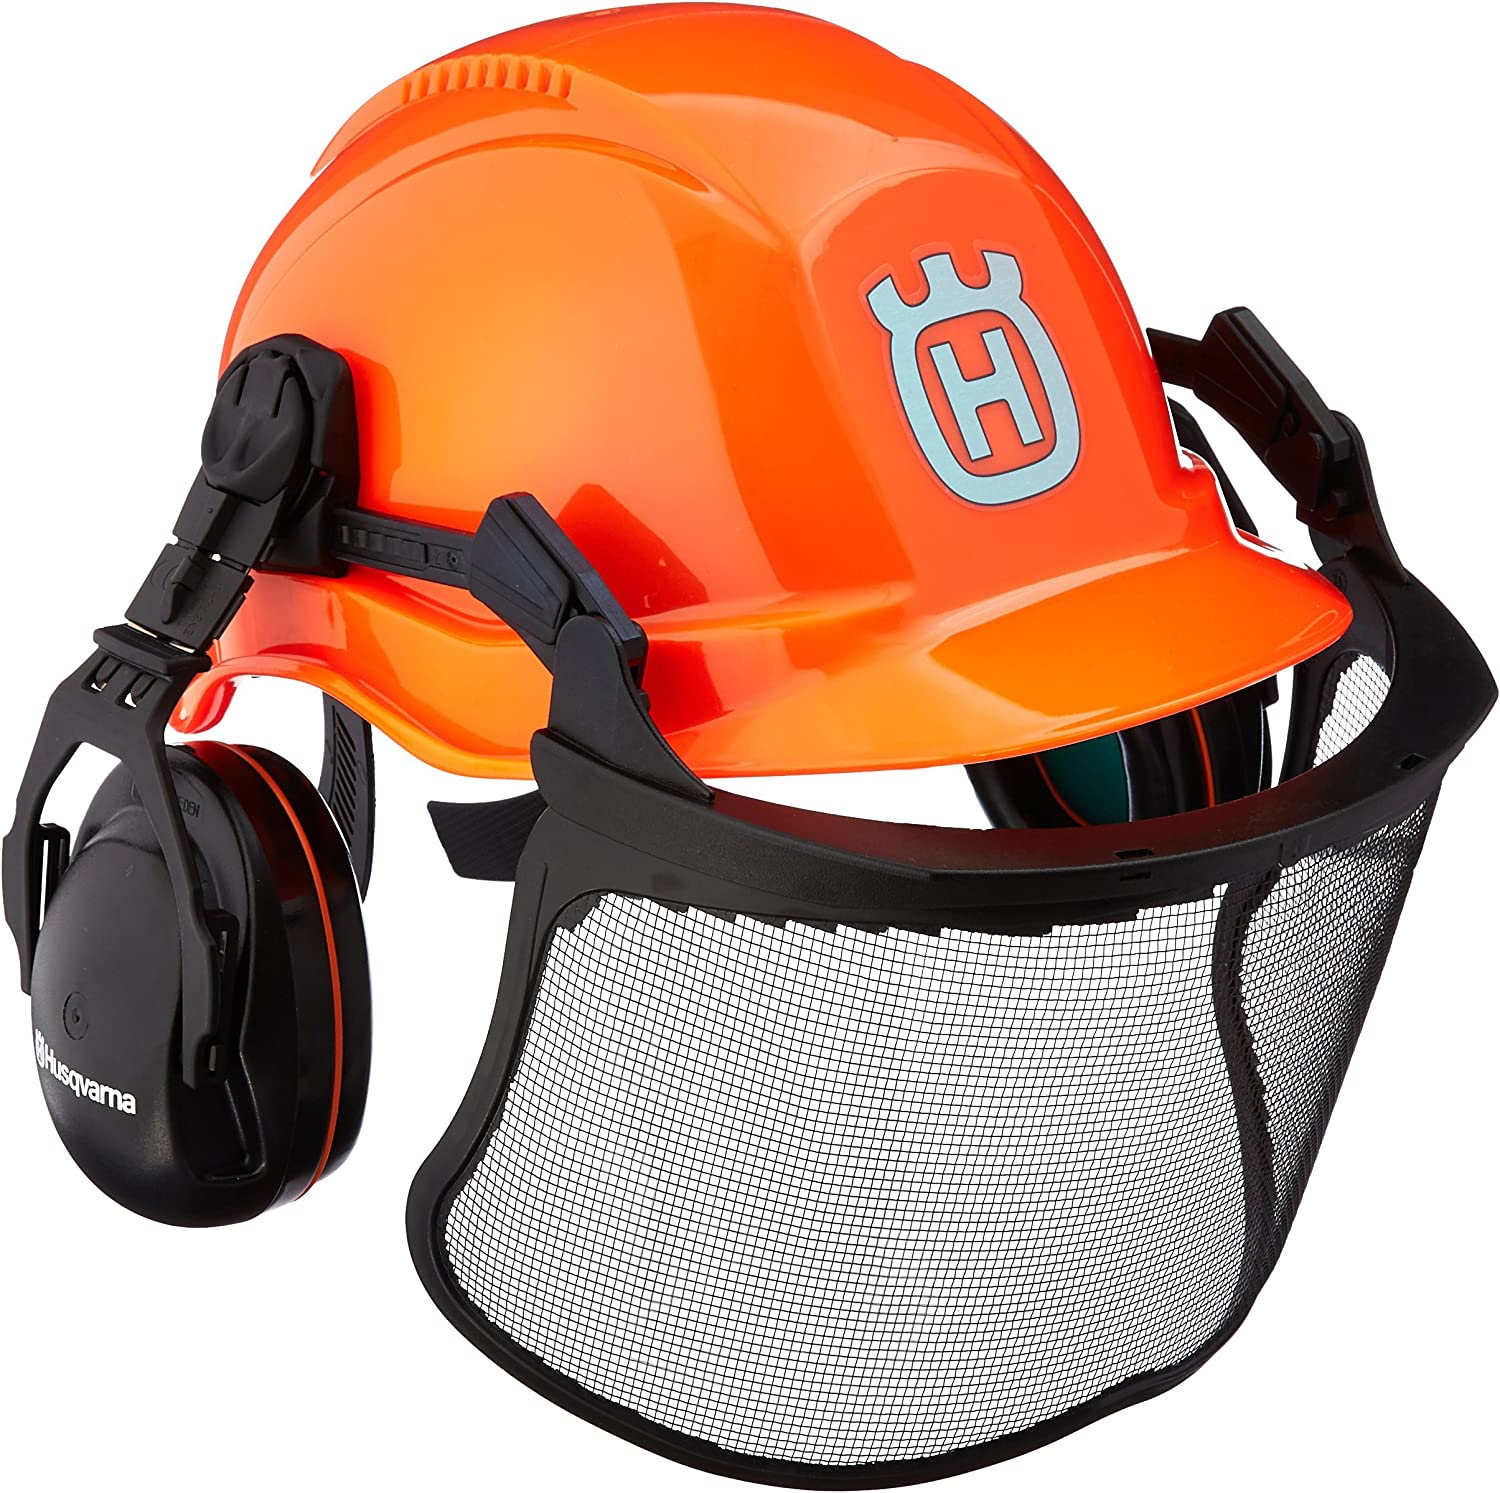 Portwest Safety Helmet Visor Forestry Combi Protection Kit PW98 Chainsaw